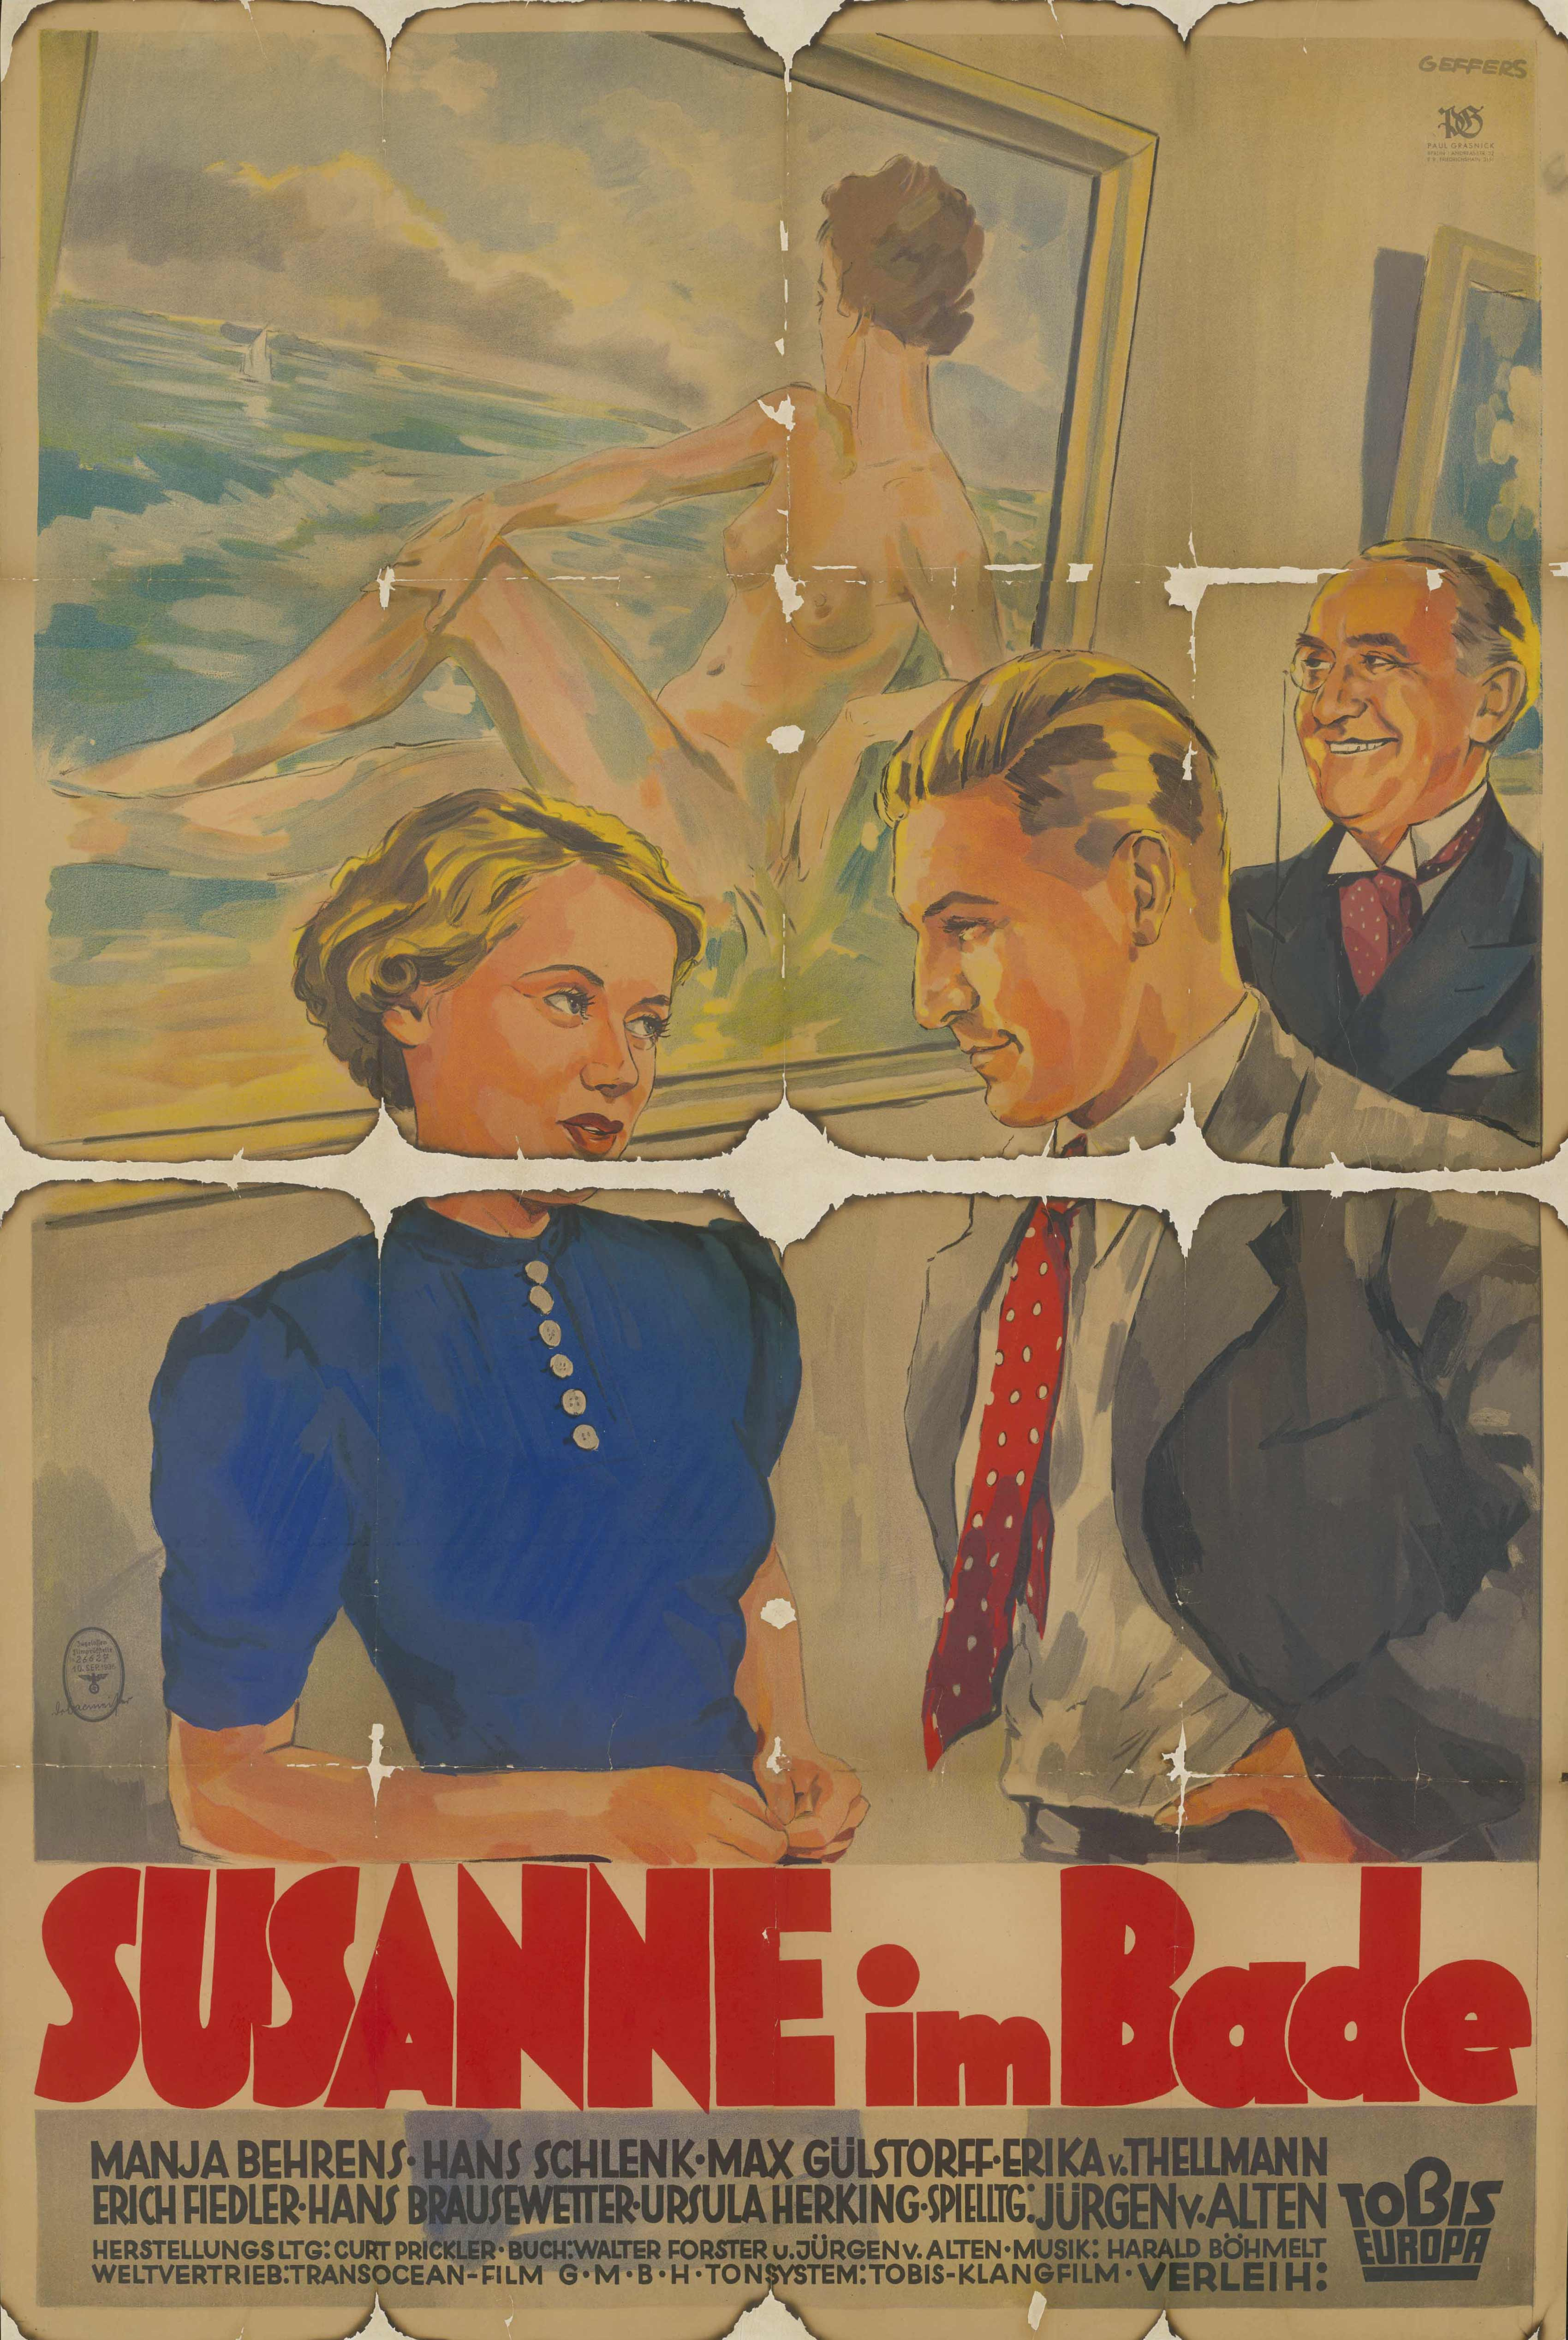 Film poster for Susanne im Bade, Germany 1936